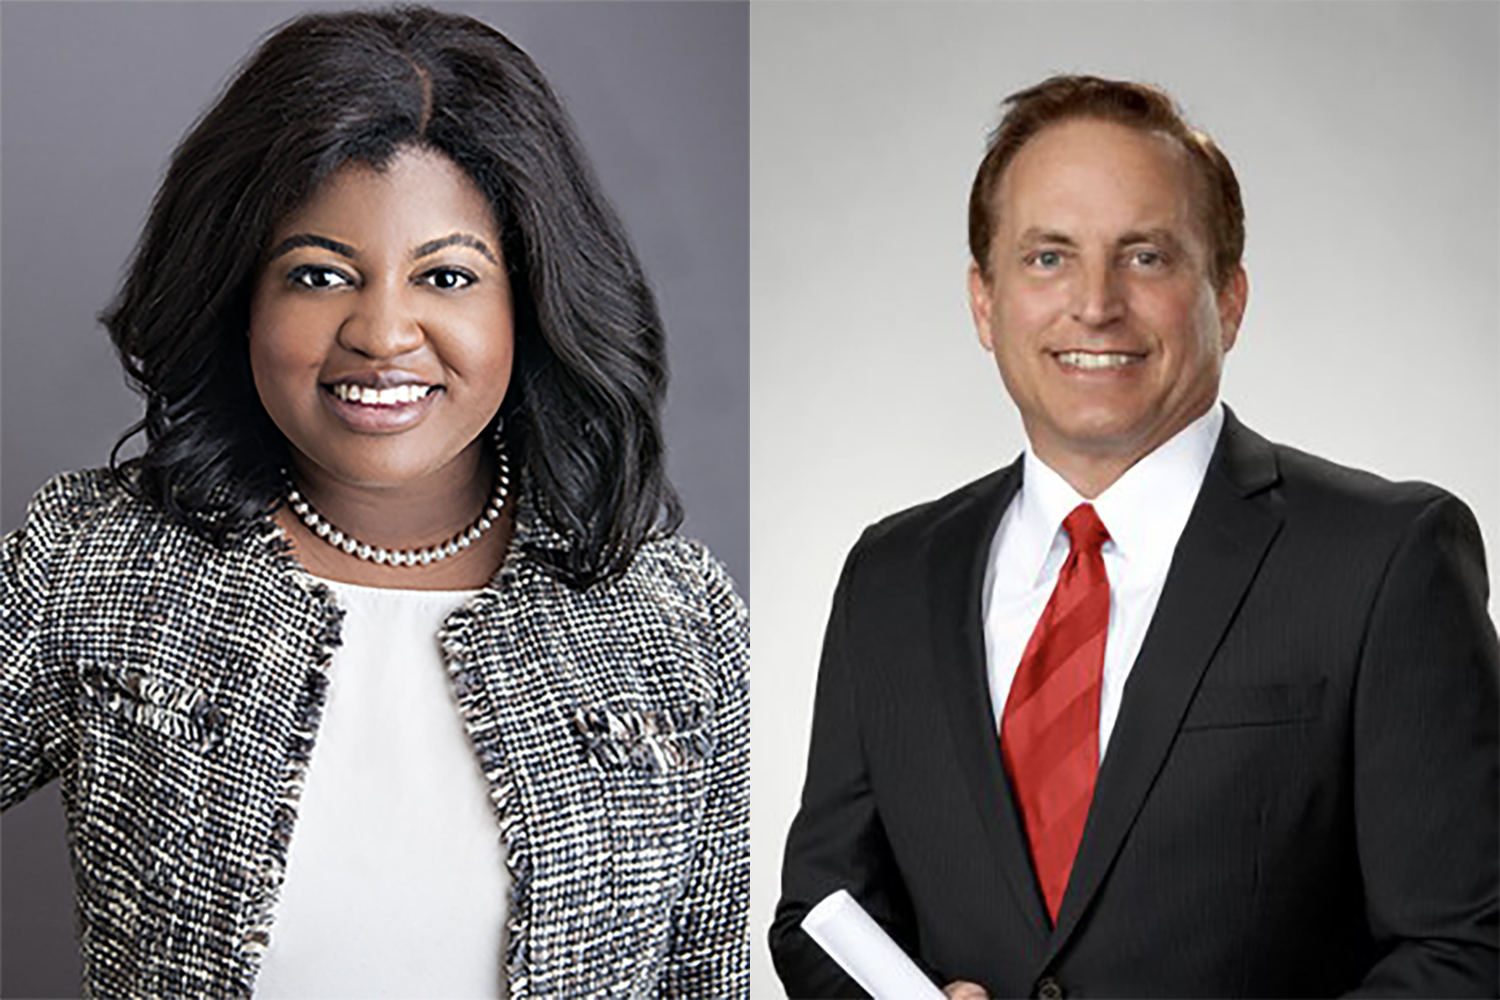 Democrat Deidre DeJear (left) is facing Republican incumbent Paul Pate for the position of Iowa Secretary of State.